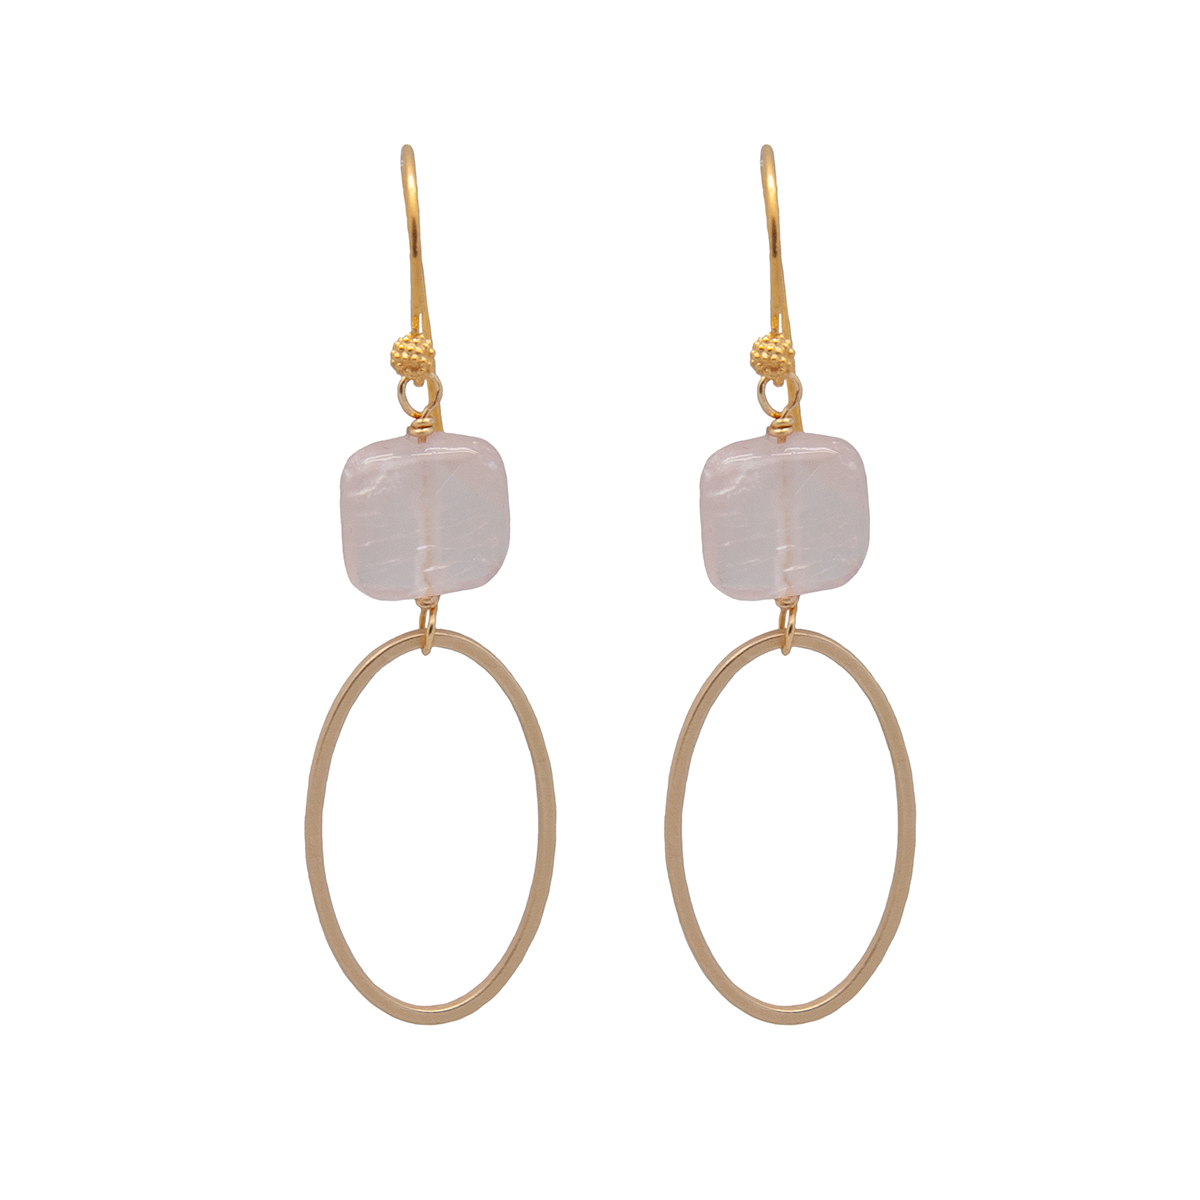 square oval earrings